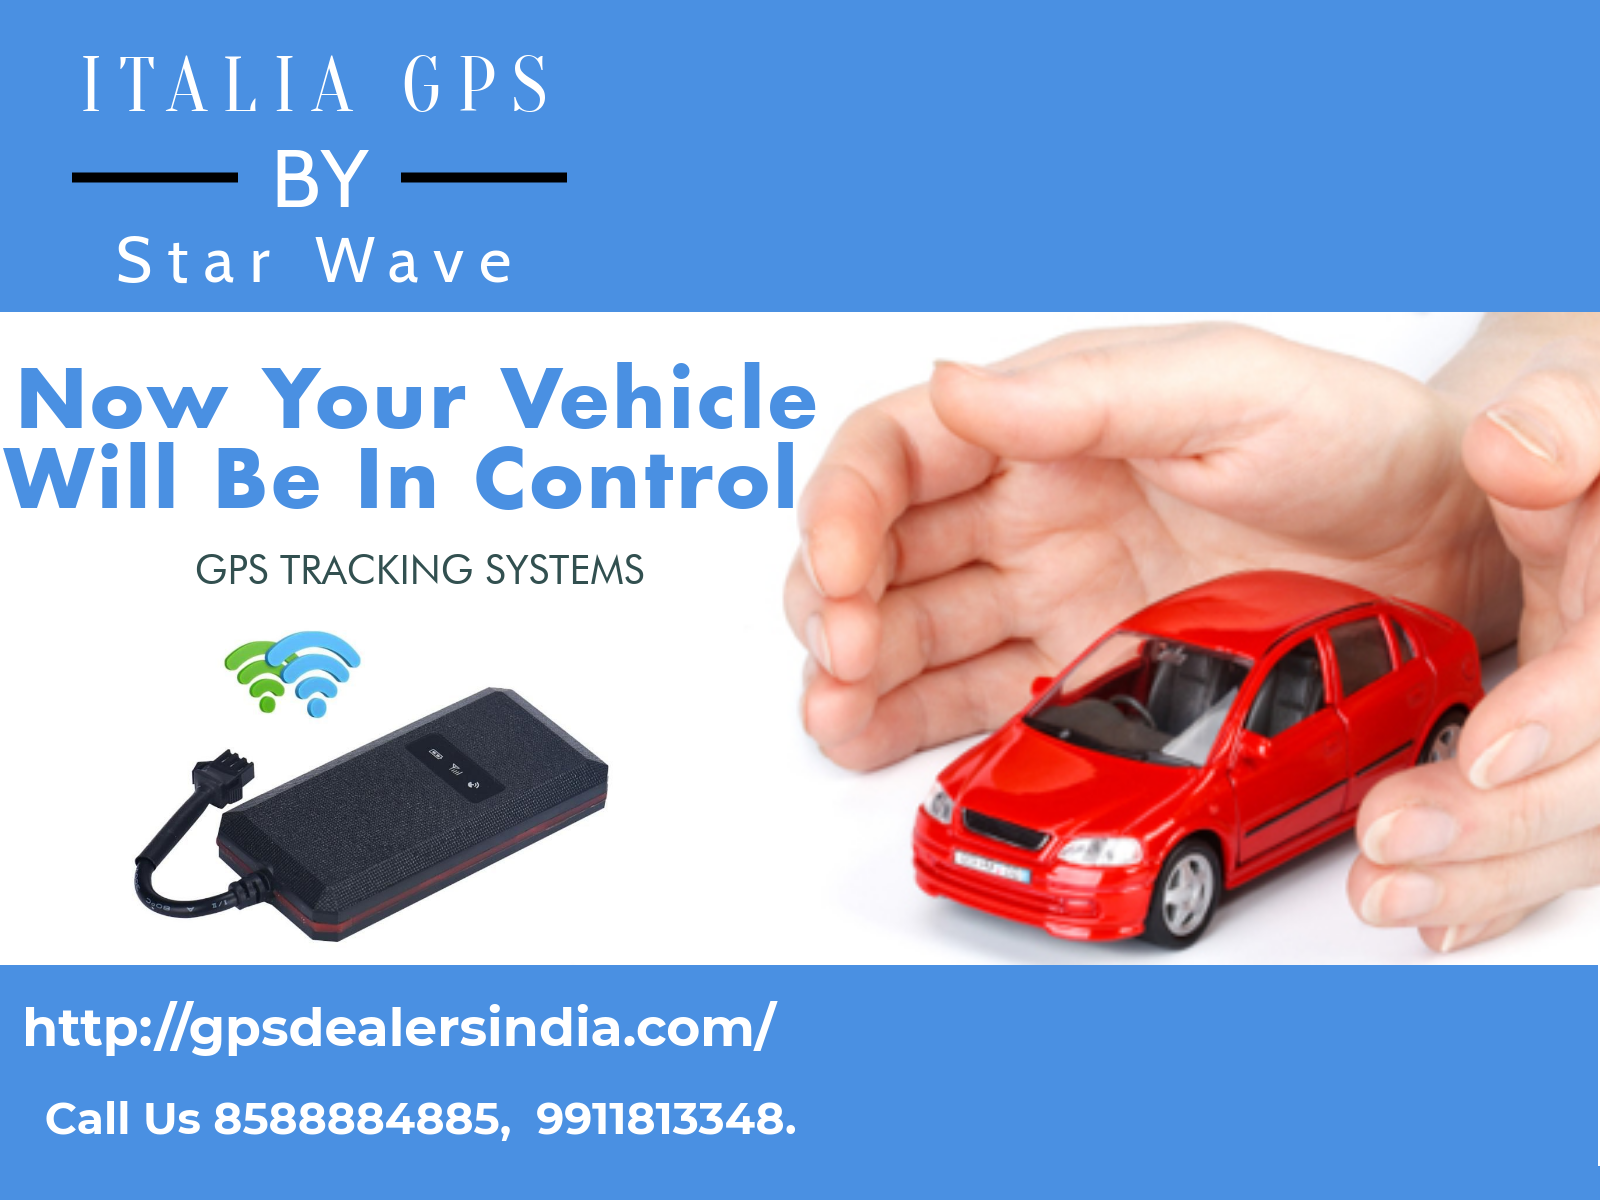 Now Your Vehicle Will Be Your Control Vehicle Tracking System